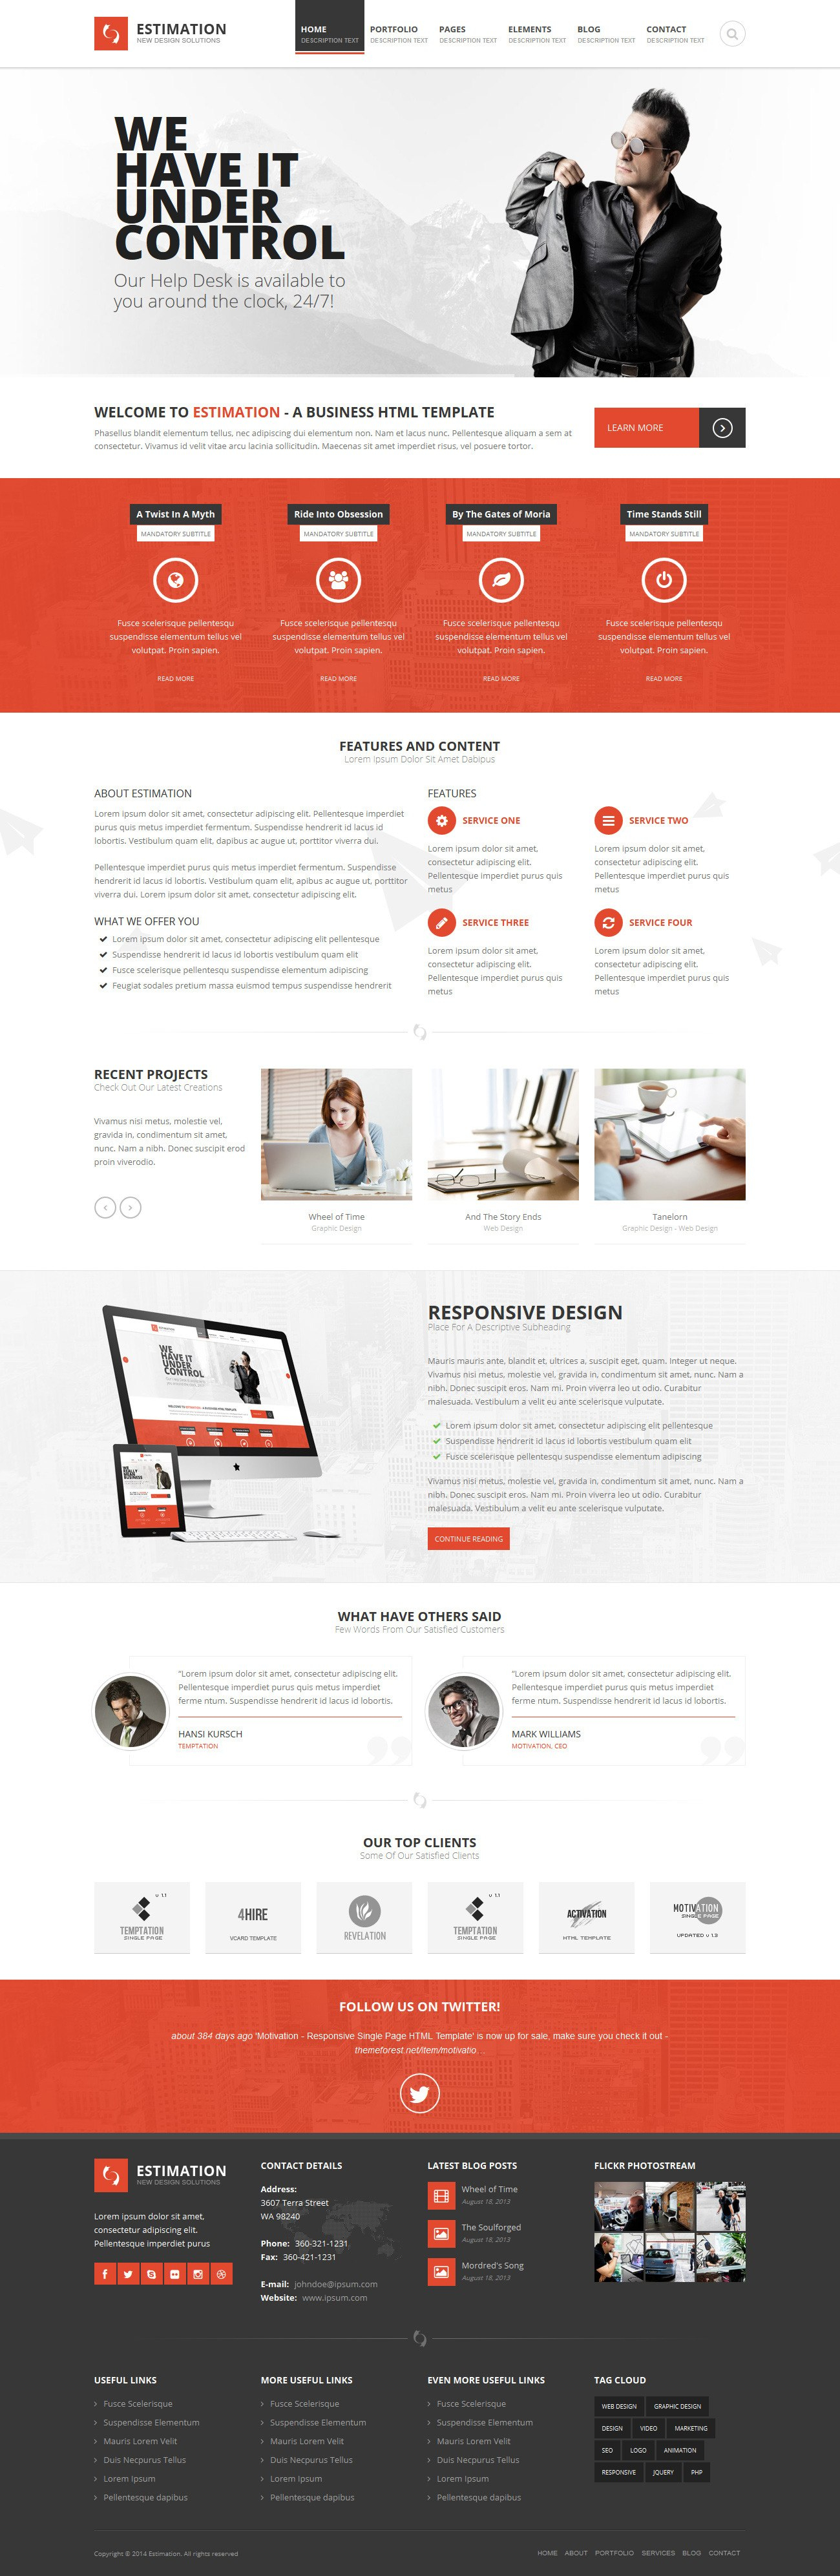 Estimation  Responsive Business Html Templatehedgehogcreative With Regard To Estimation Responsive Business Html Template Free Download